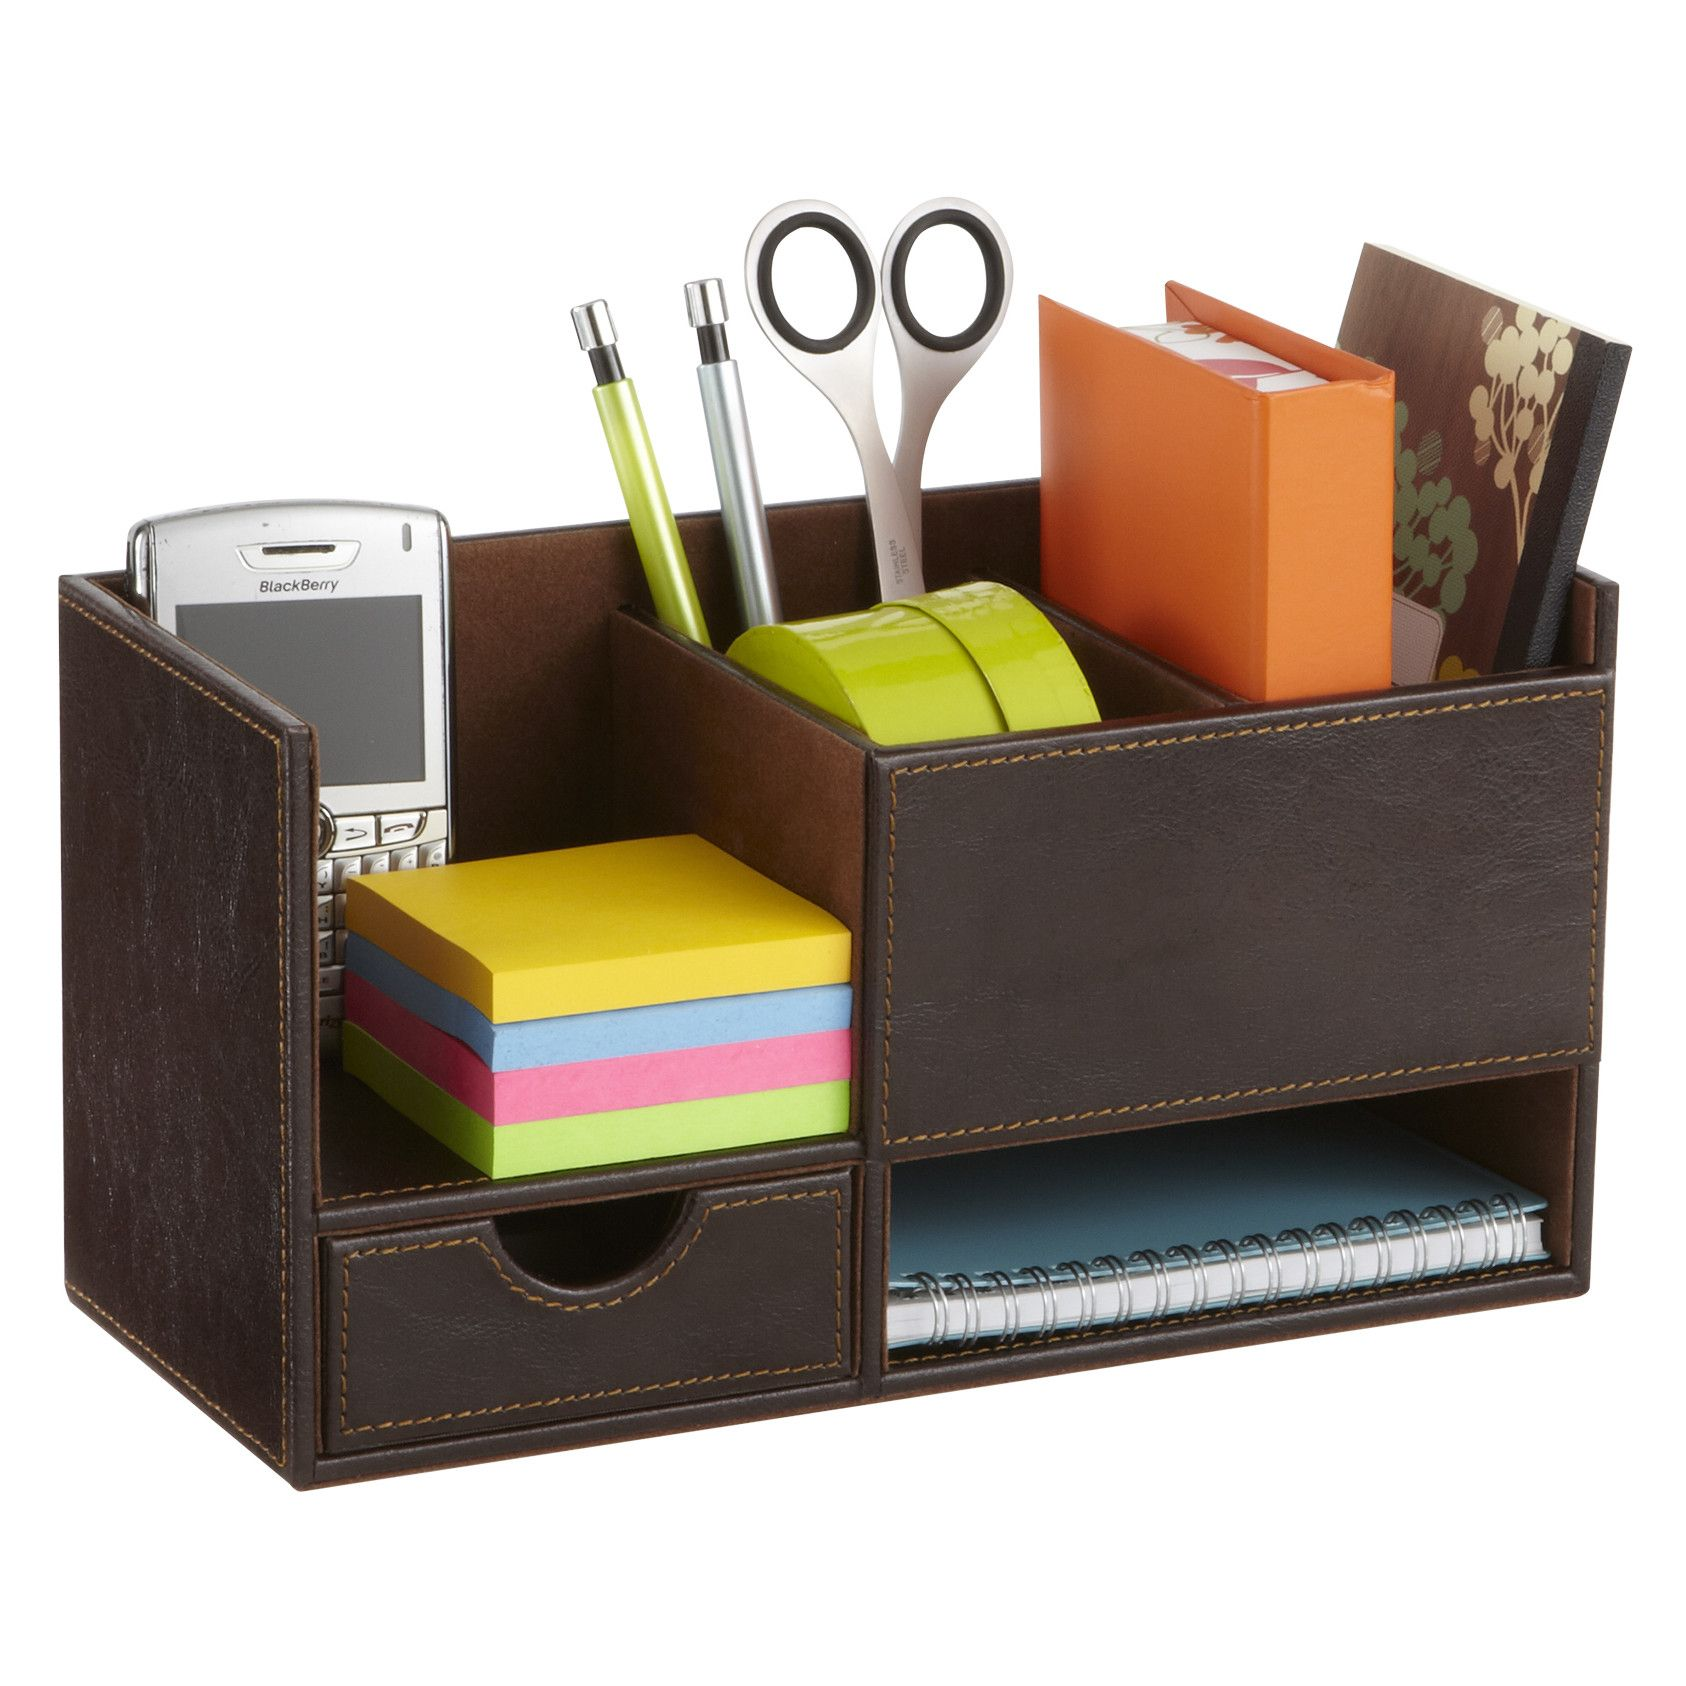 Fascinating Desk Organizers For Home Furniture Ideas Desk